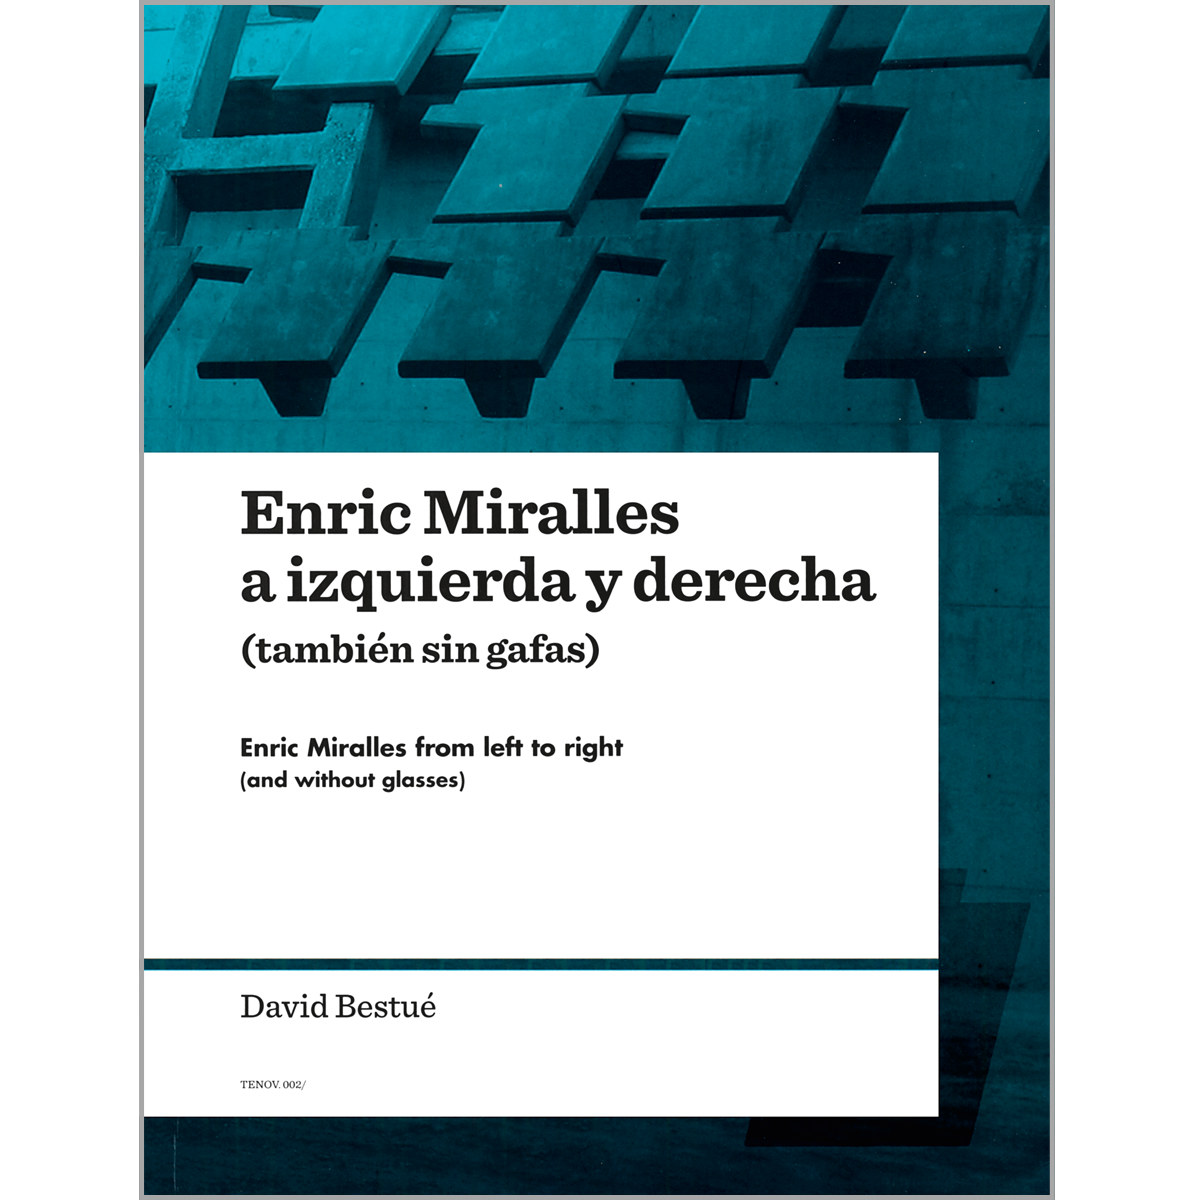 Enric Miralles from left to right